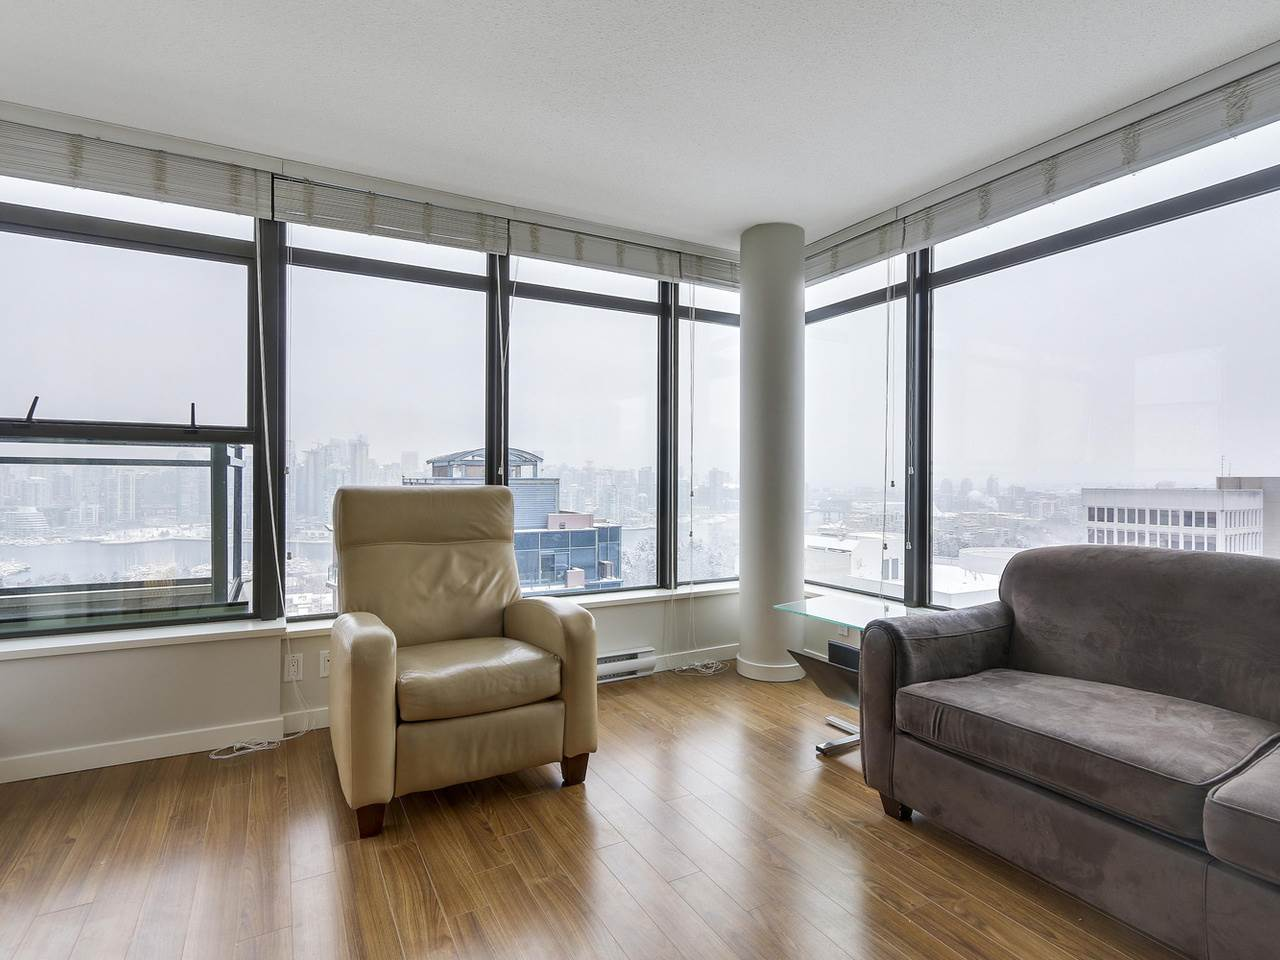 "Photo 7: 1507 1068 W BROADWAY in Vancouver: Fairview VW Condo for sale in ""The Zone"" (Vancouver West)  : MLS® # R2137350"